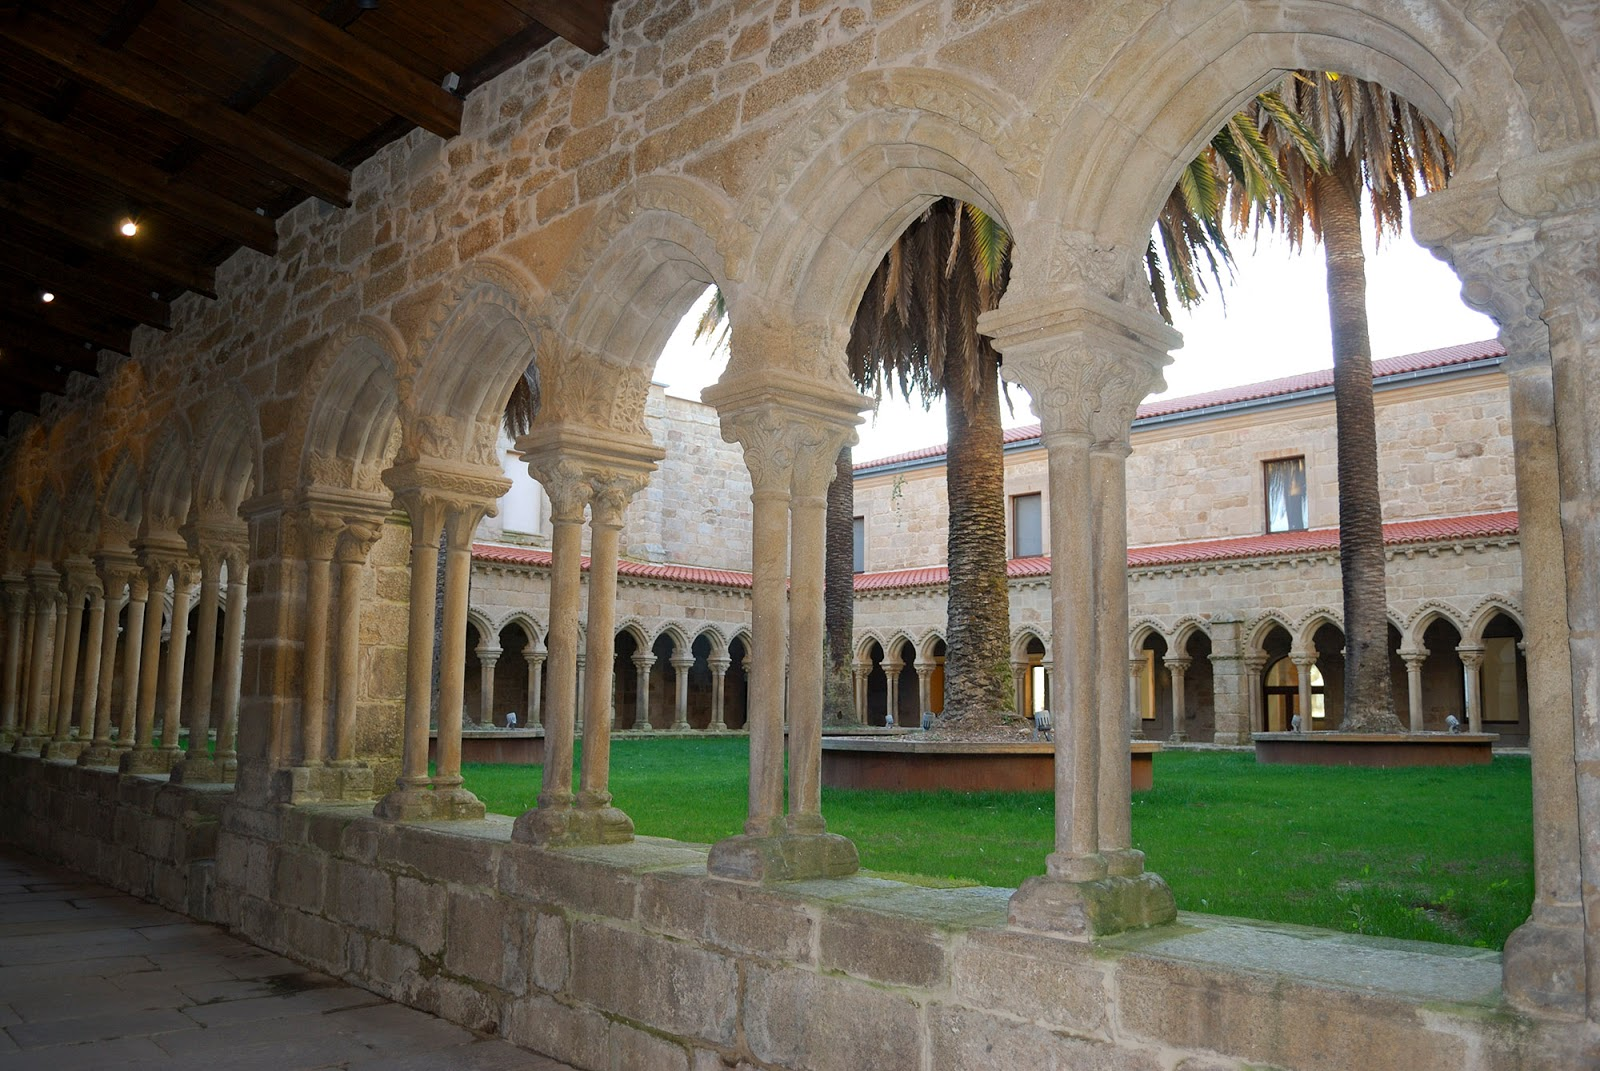 galicia spain ourense thermal spring city cloister